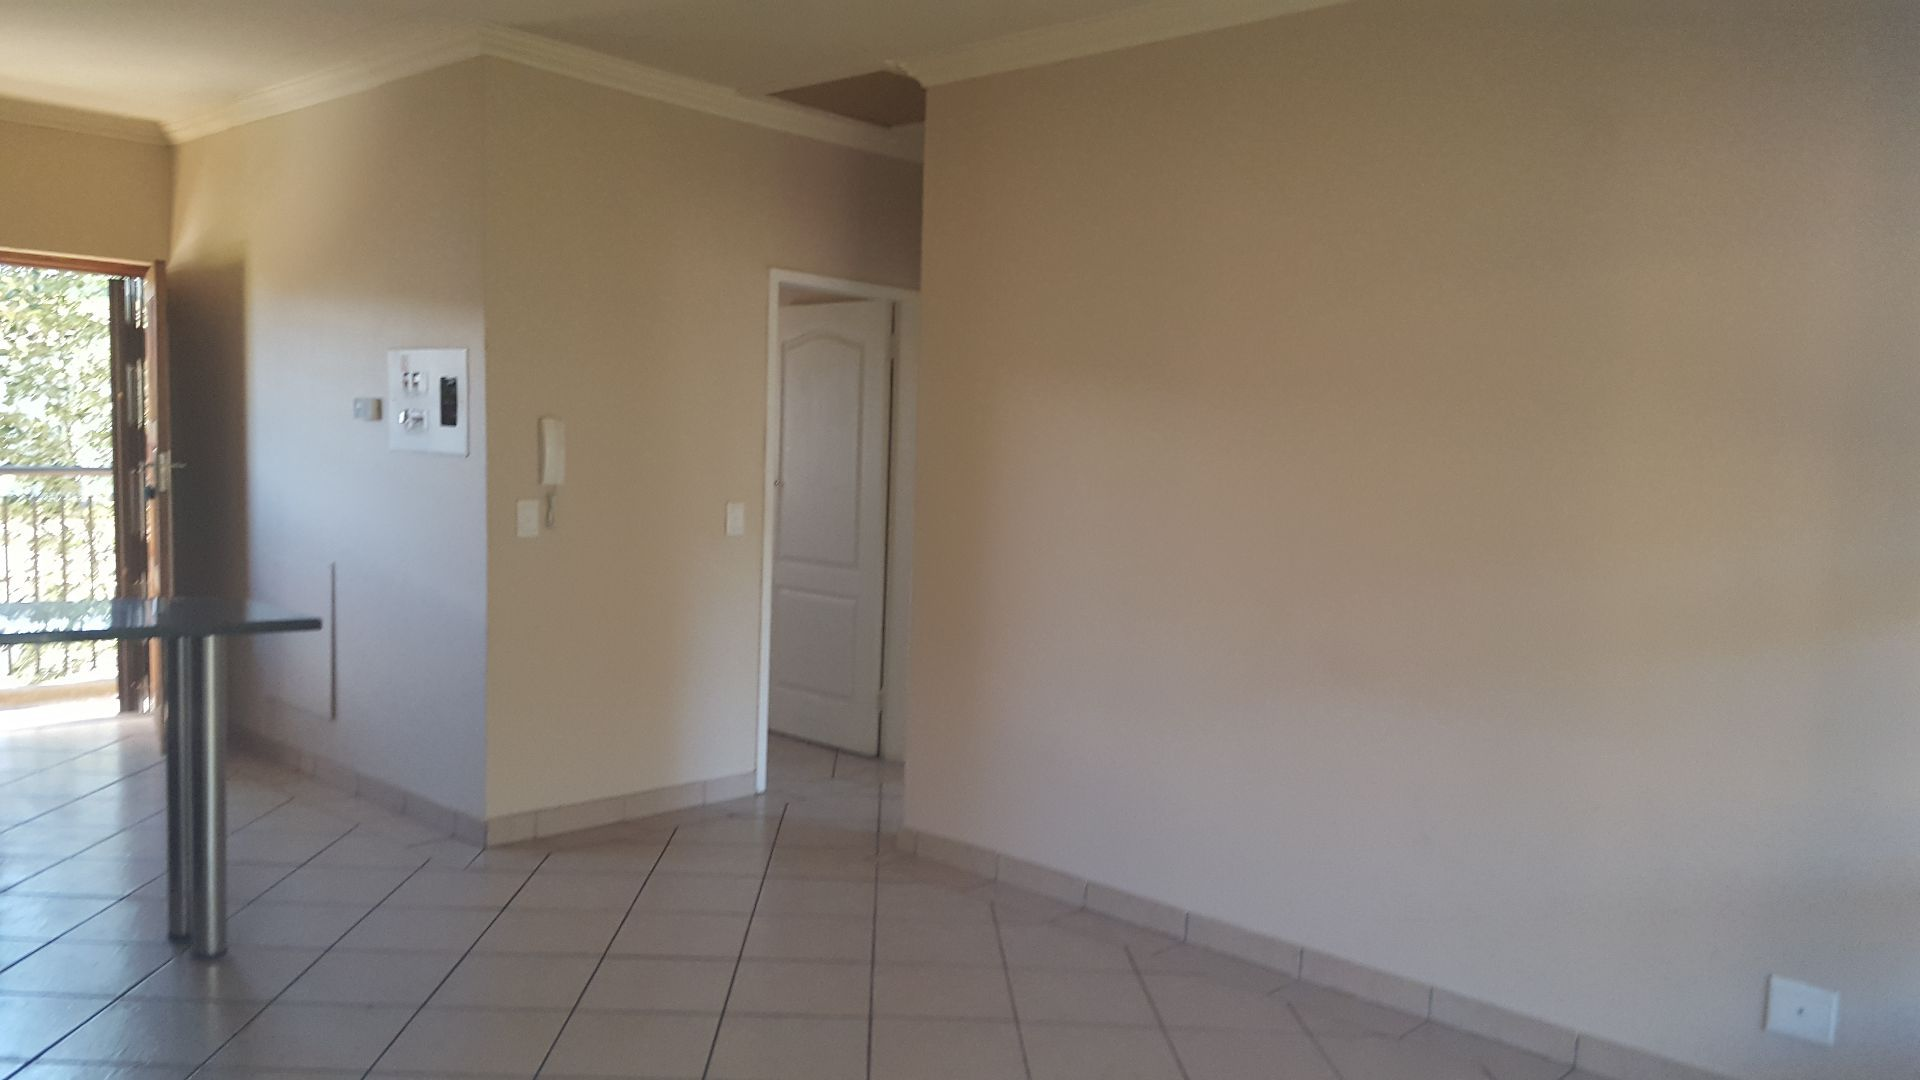 Potchefstroom Central property for sale. Ref No: 13514573. Picture no 7